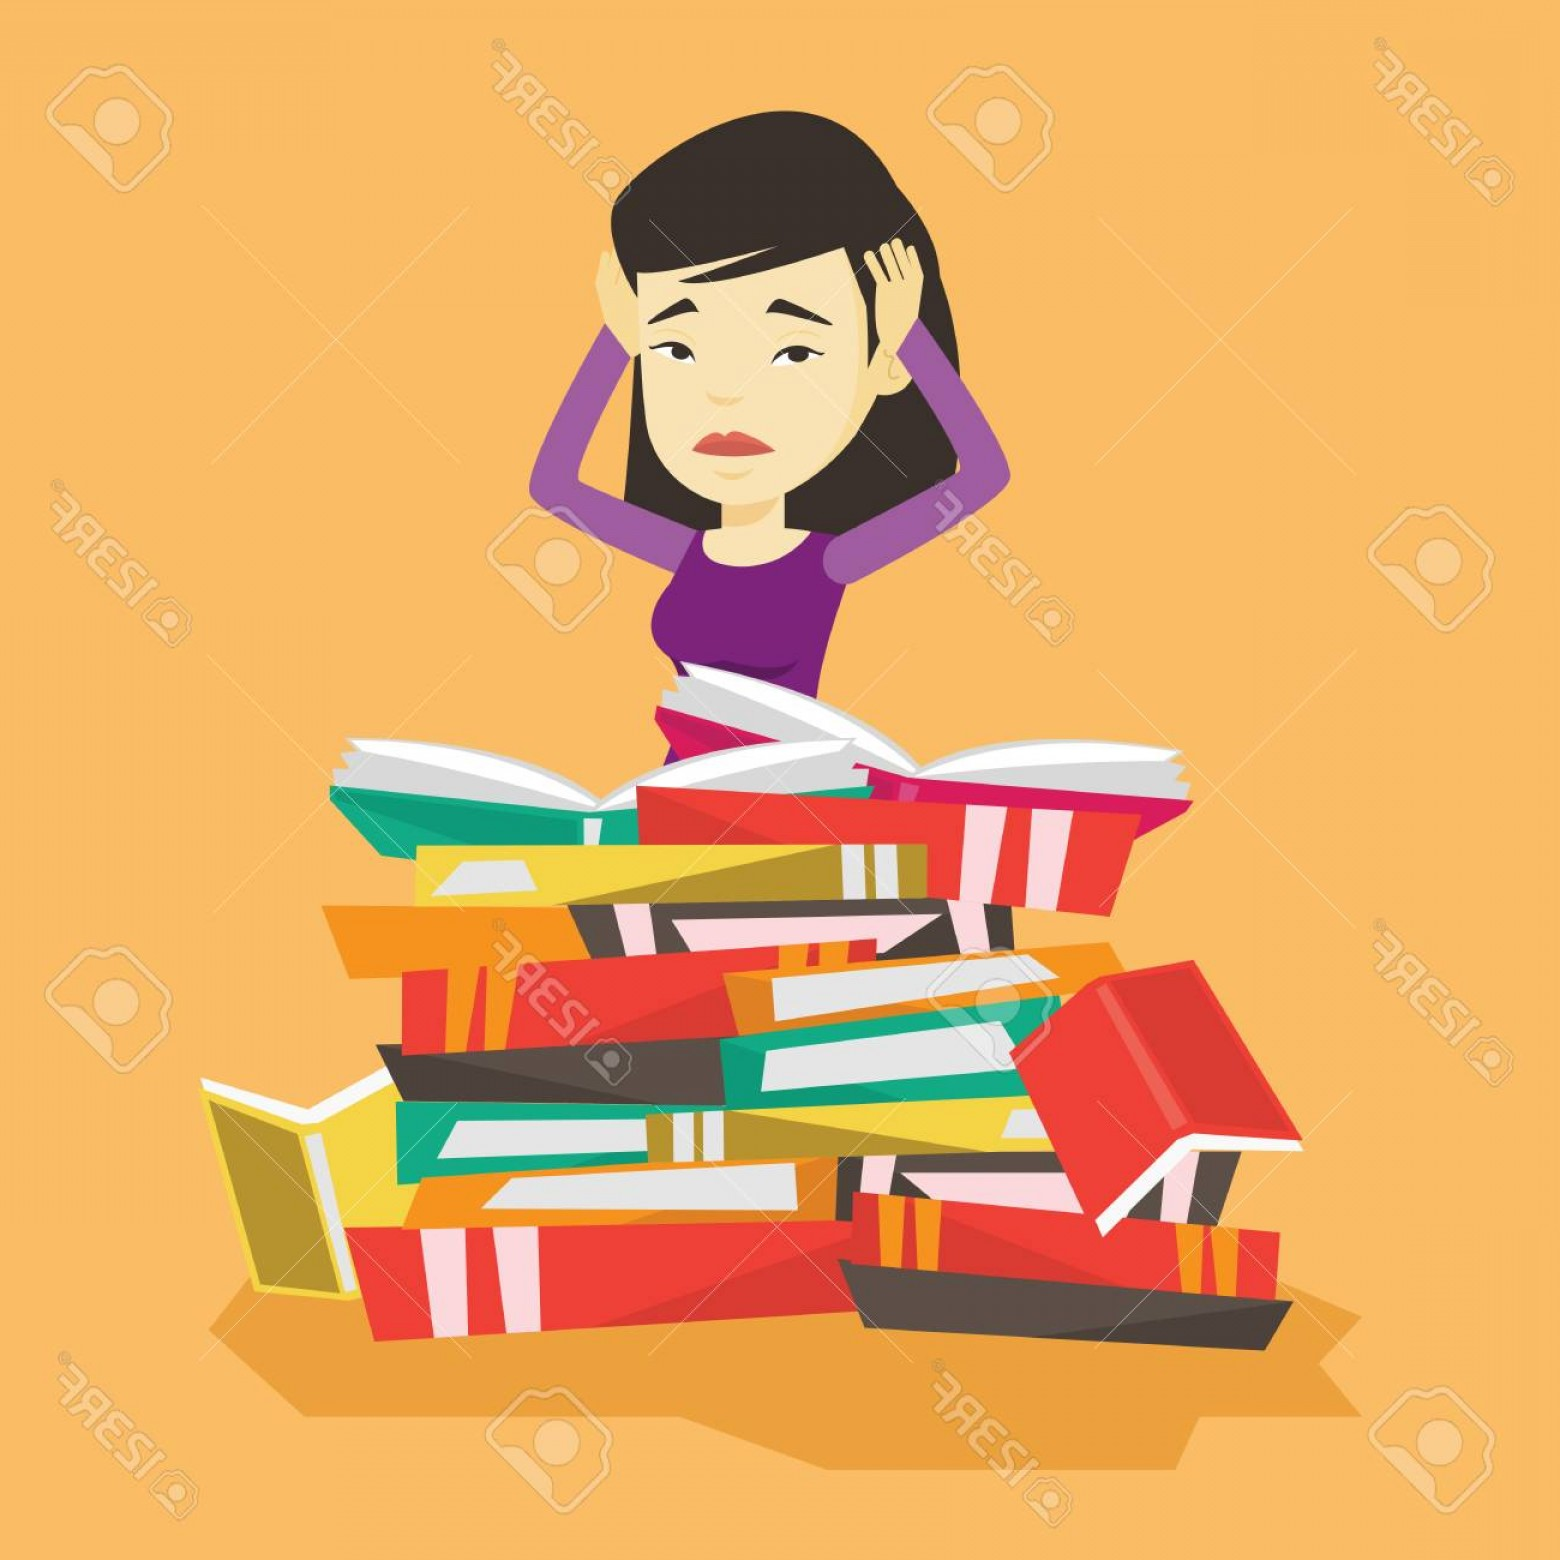 Asian Student Vector: Photostock Vector Asian Student Sitting In Huge Pile Of Books Exhausted Student Preparing For Exam With Books Stressed